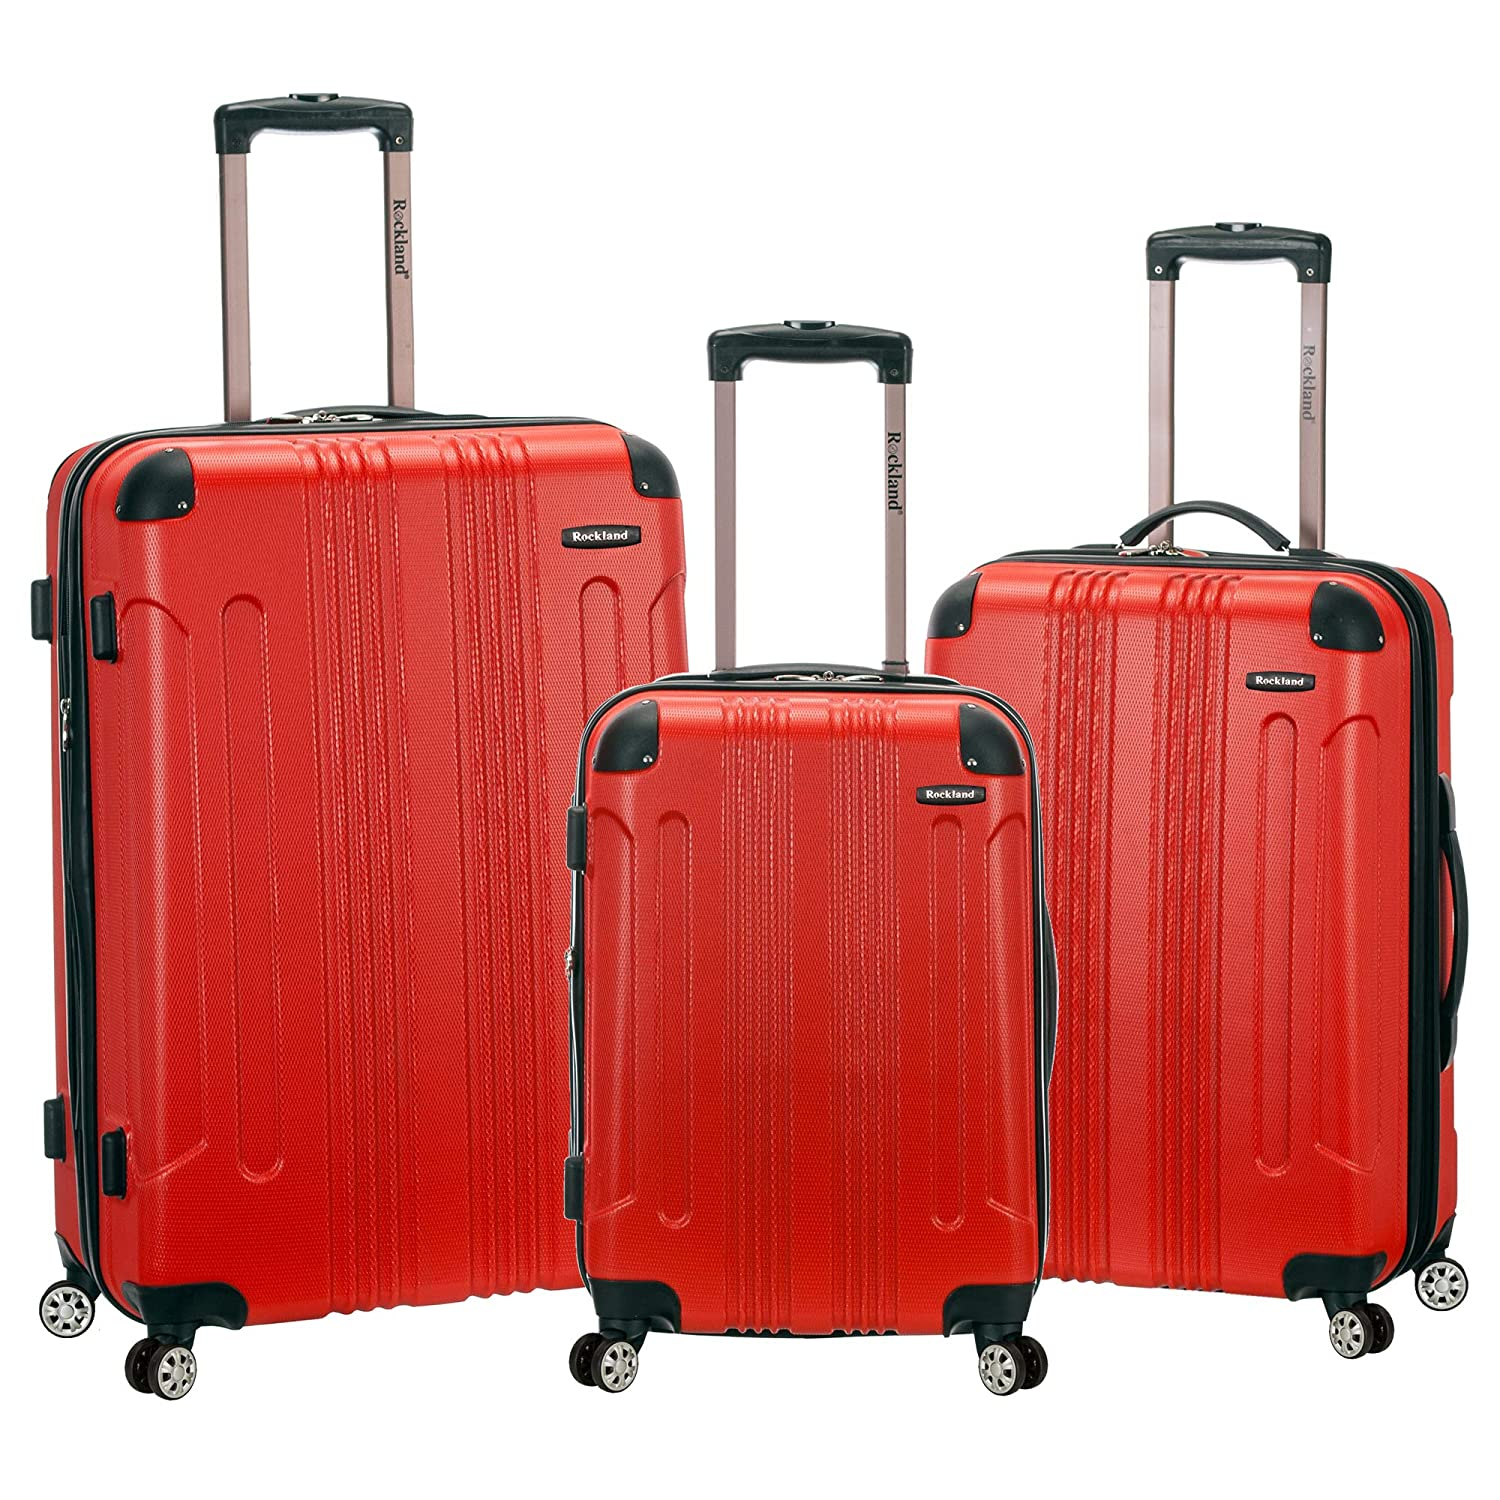 1cc5c52df Amazon.com   Rockland 3 Piece Sonic Abs Upright Set, Red, One Size   Luggage  Sets